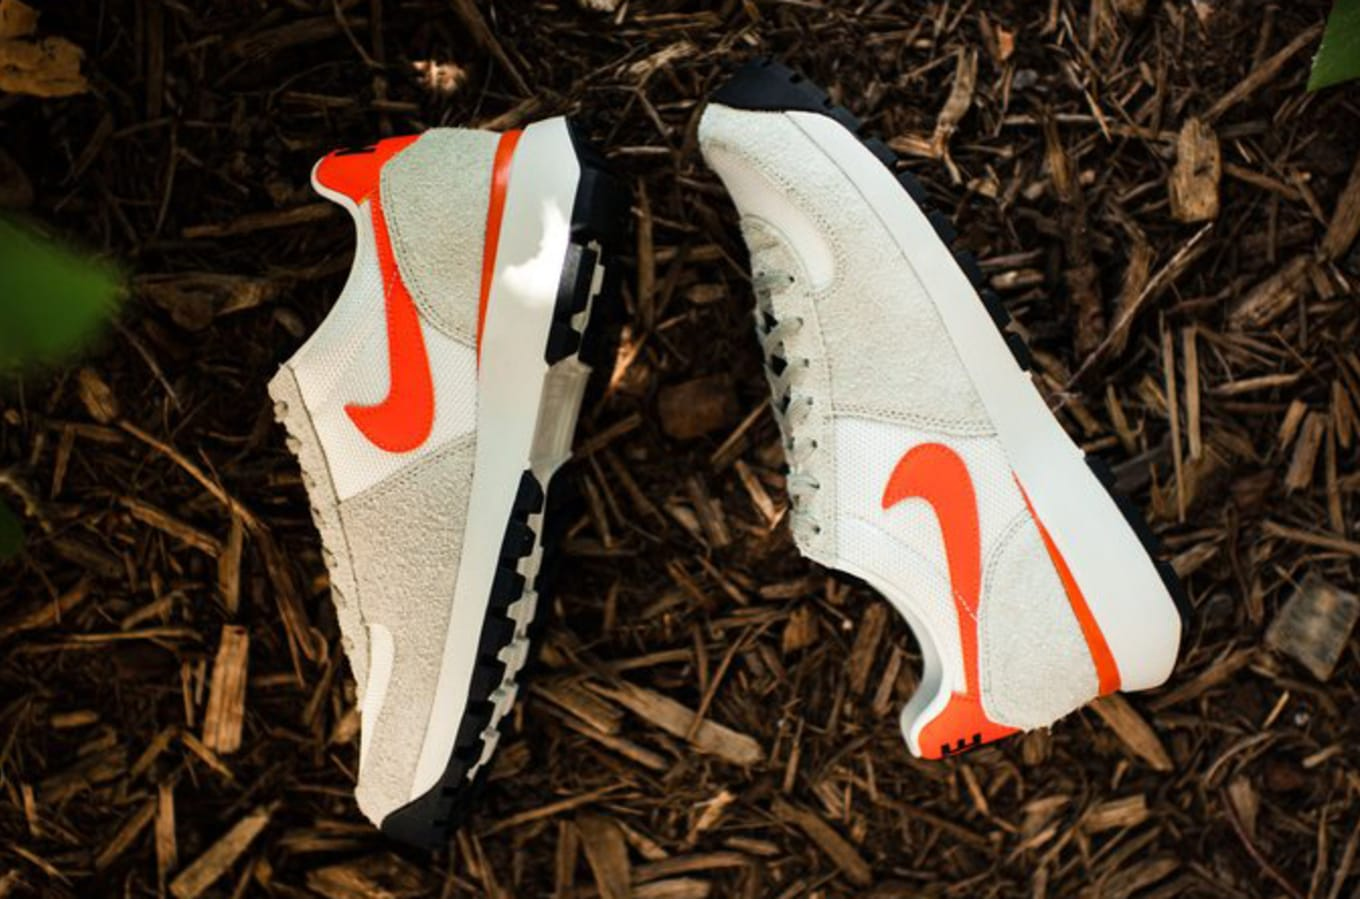 sale retailer 0b4b9 d1d4b The Nike Lava Dome is back with a twist.